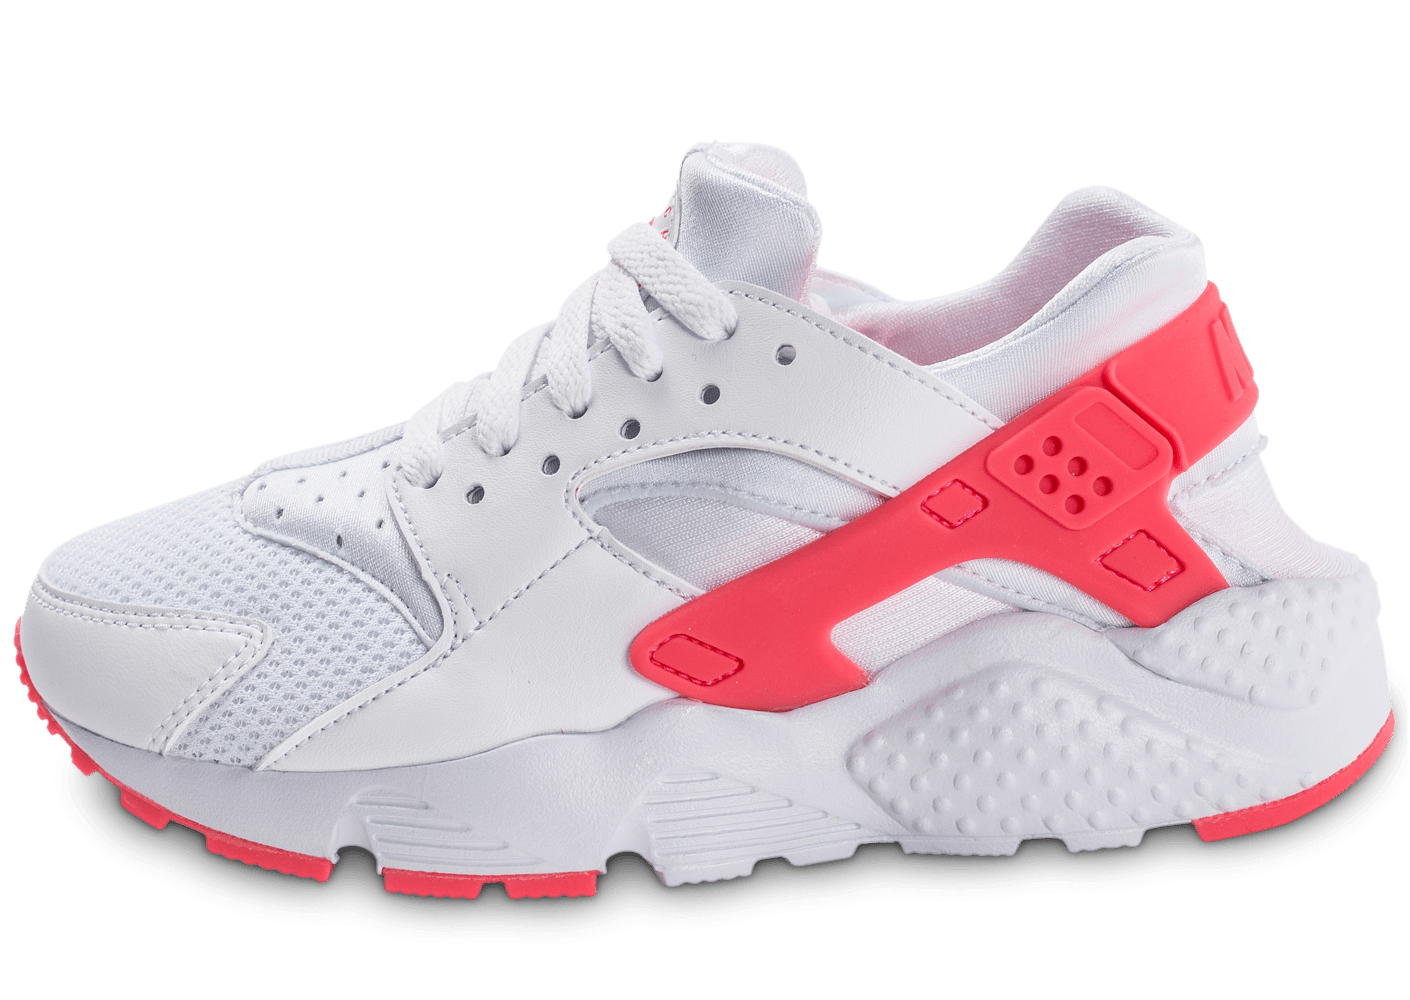 nike huarache run junior blanche et rose chaussures enfant chausport. Black Bedroom Furniture Sets. Home Design Ideas